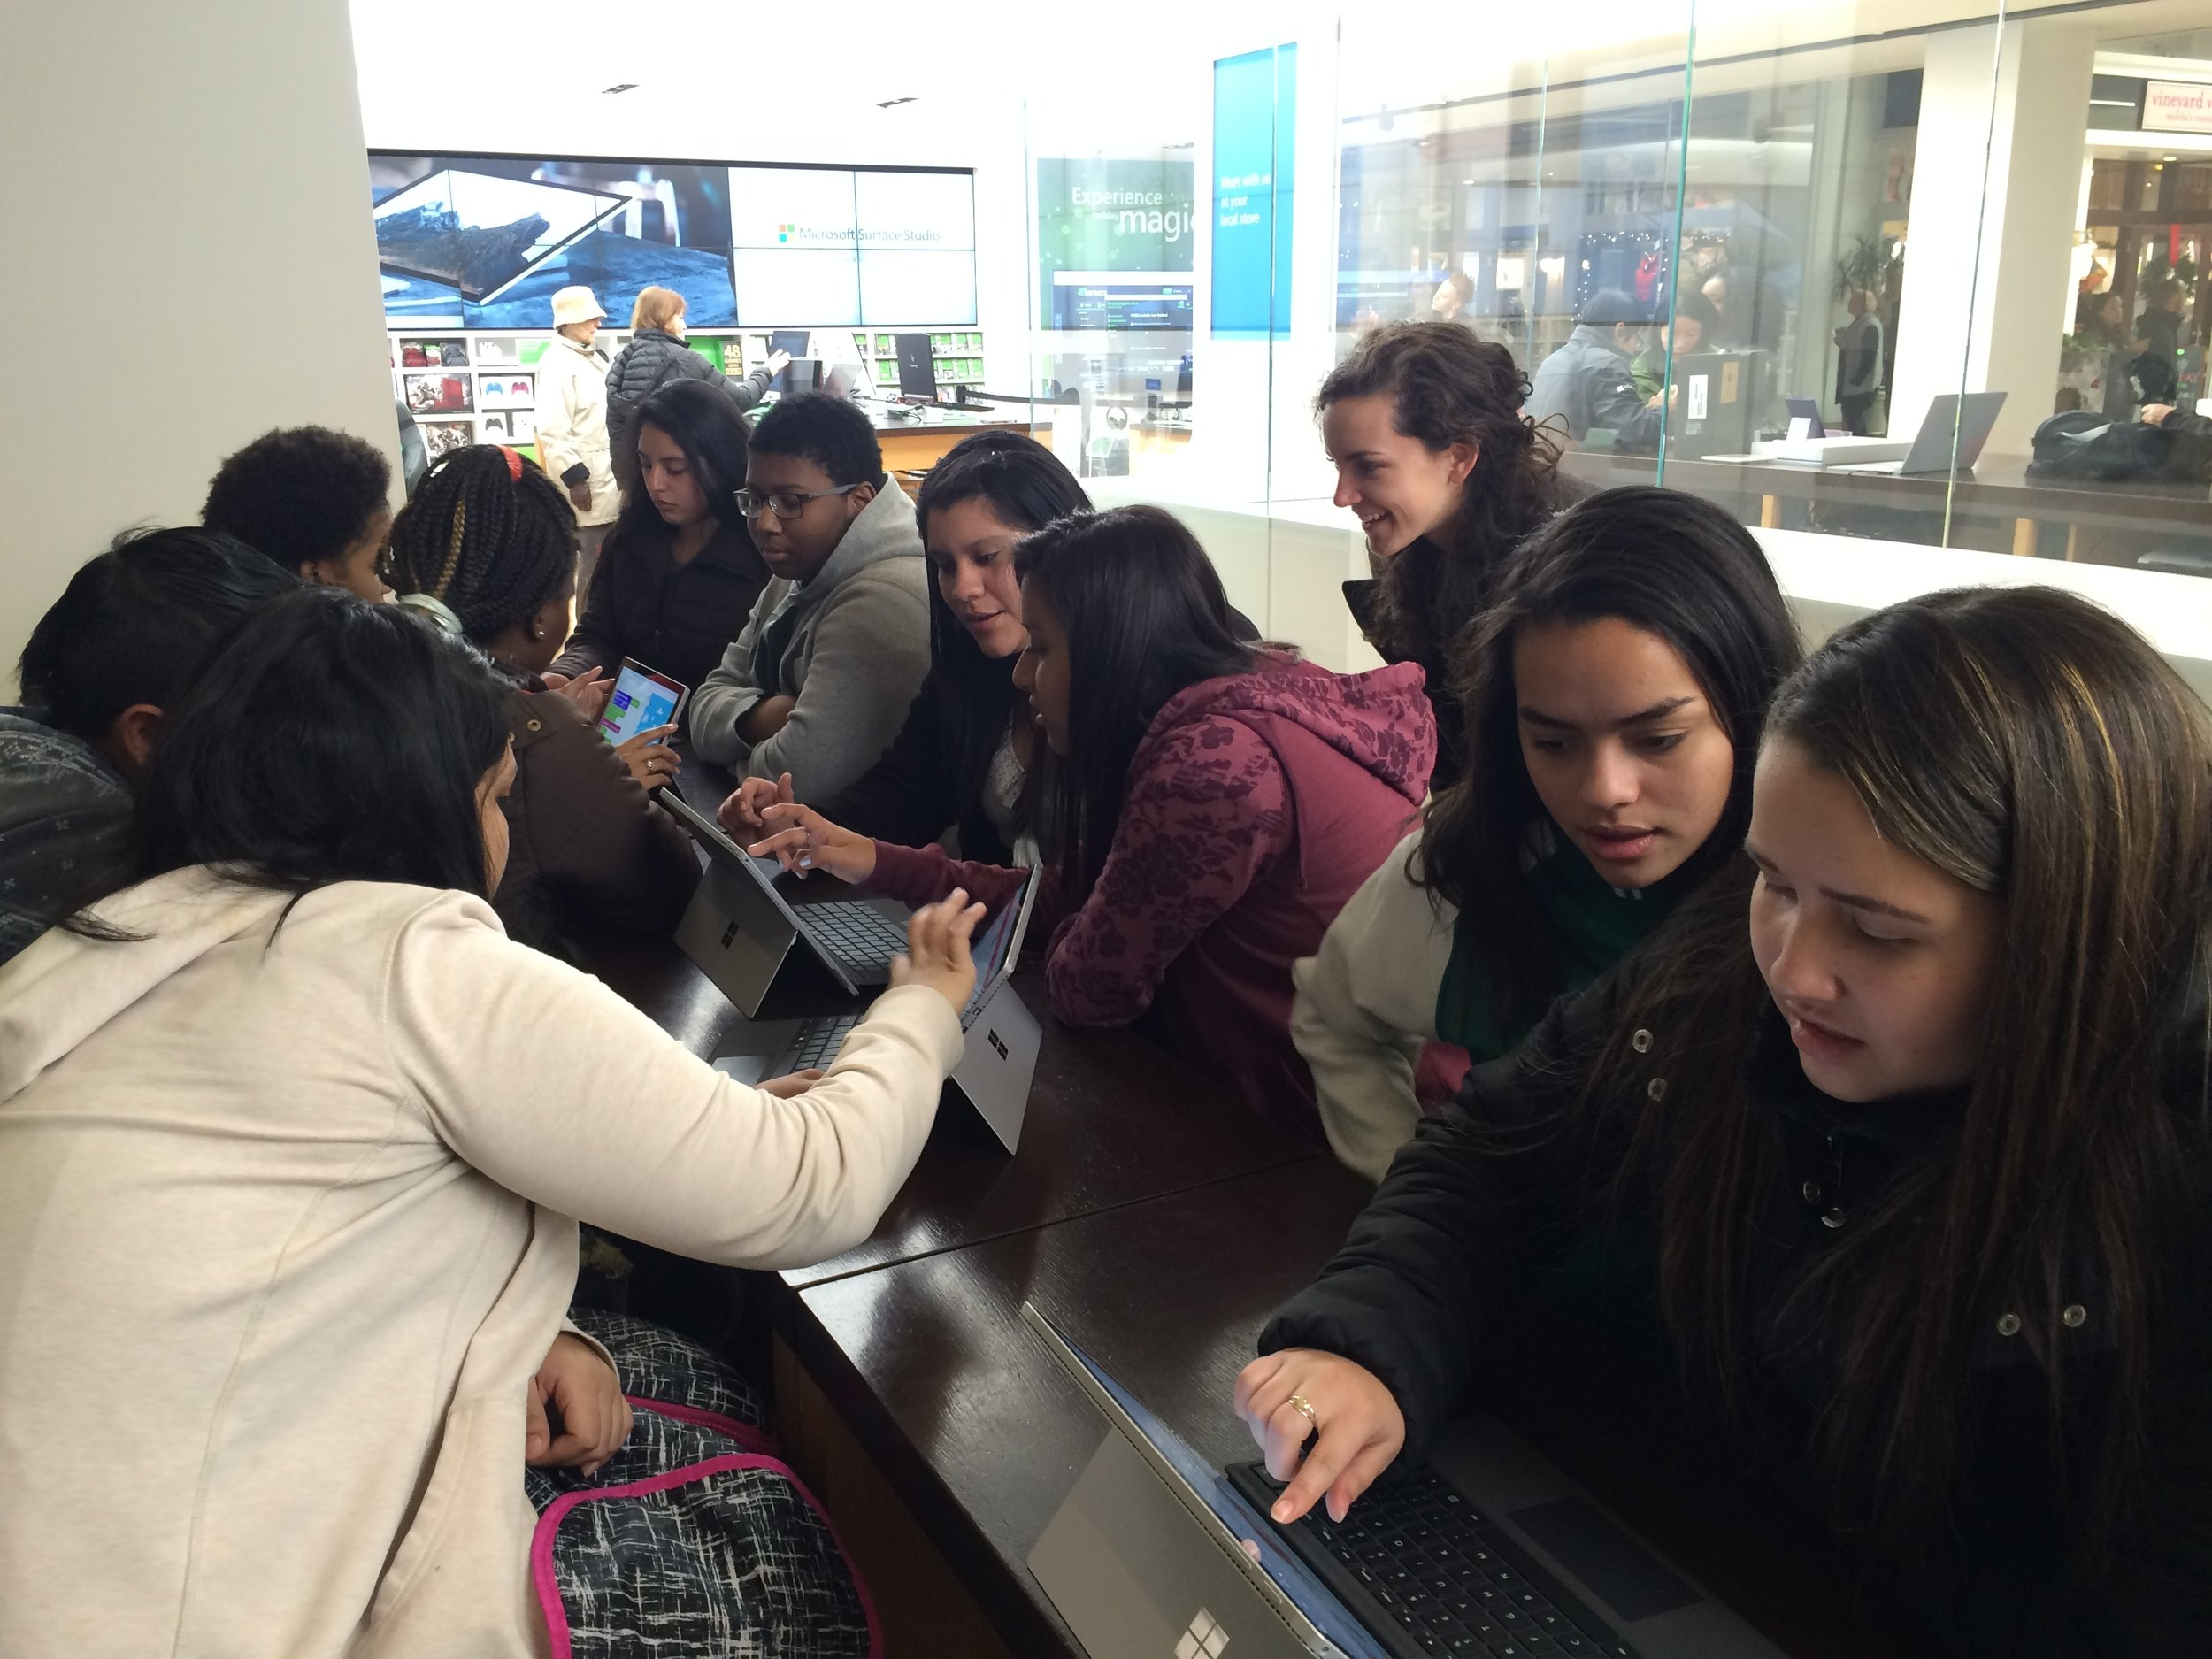 Emanuelle and other Somerville students try their hands at coding.